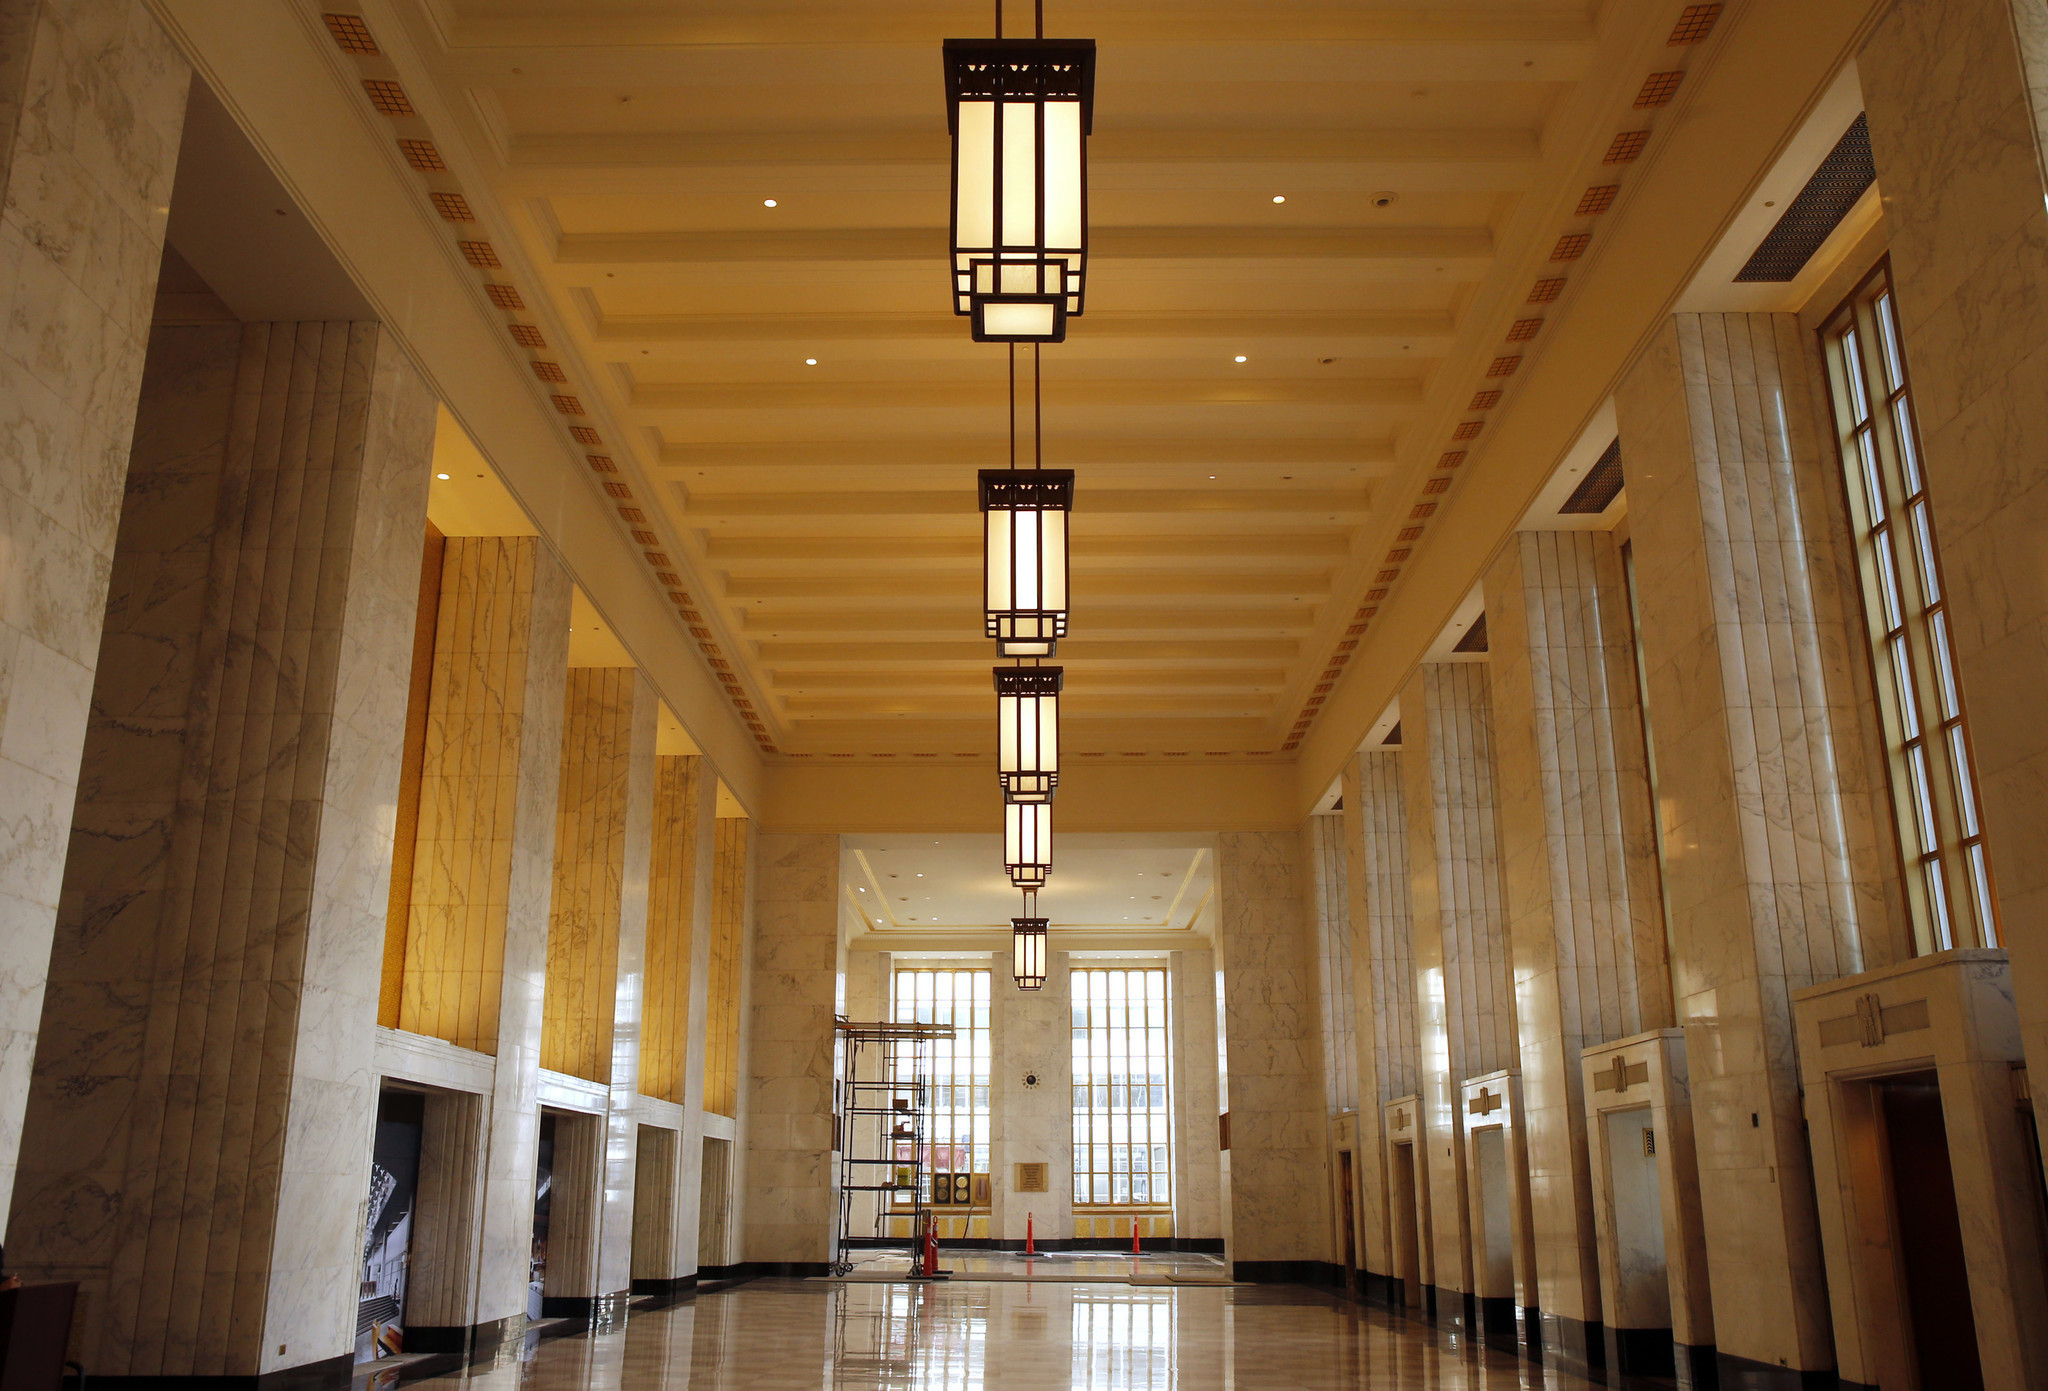 Inside the old main post office a $600 million blank